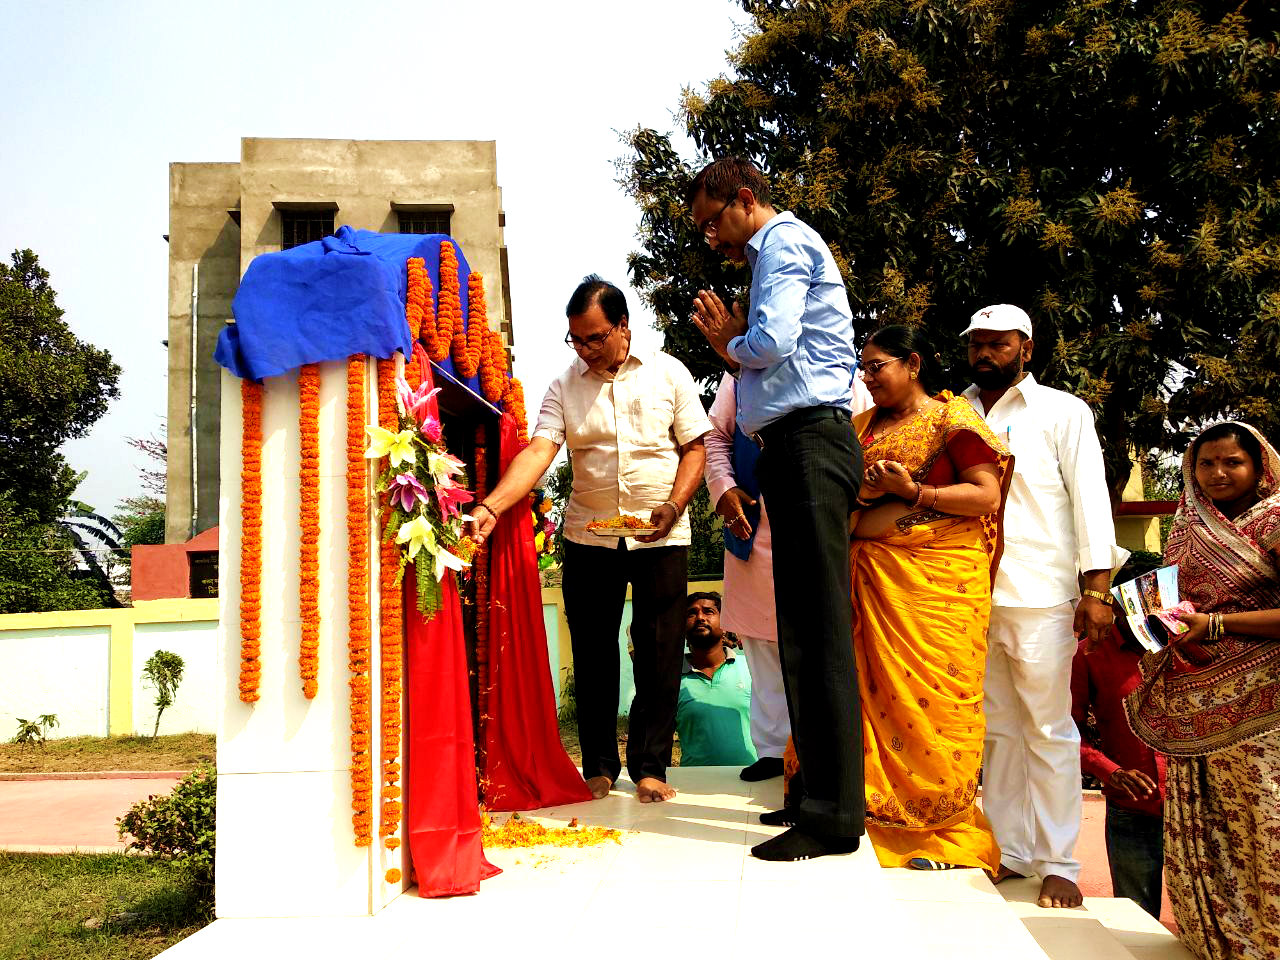 Dr.Madhepuri along with DM Md.Sohail, Zila Parishad Chair Person Smt.Manju Devi and others paying homage to the War Martyrs at Shahid Park , Madhepura.